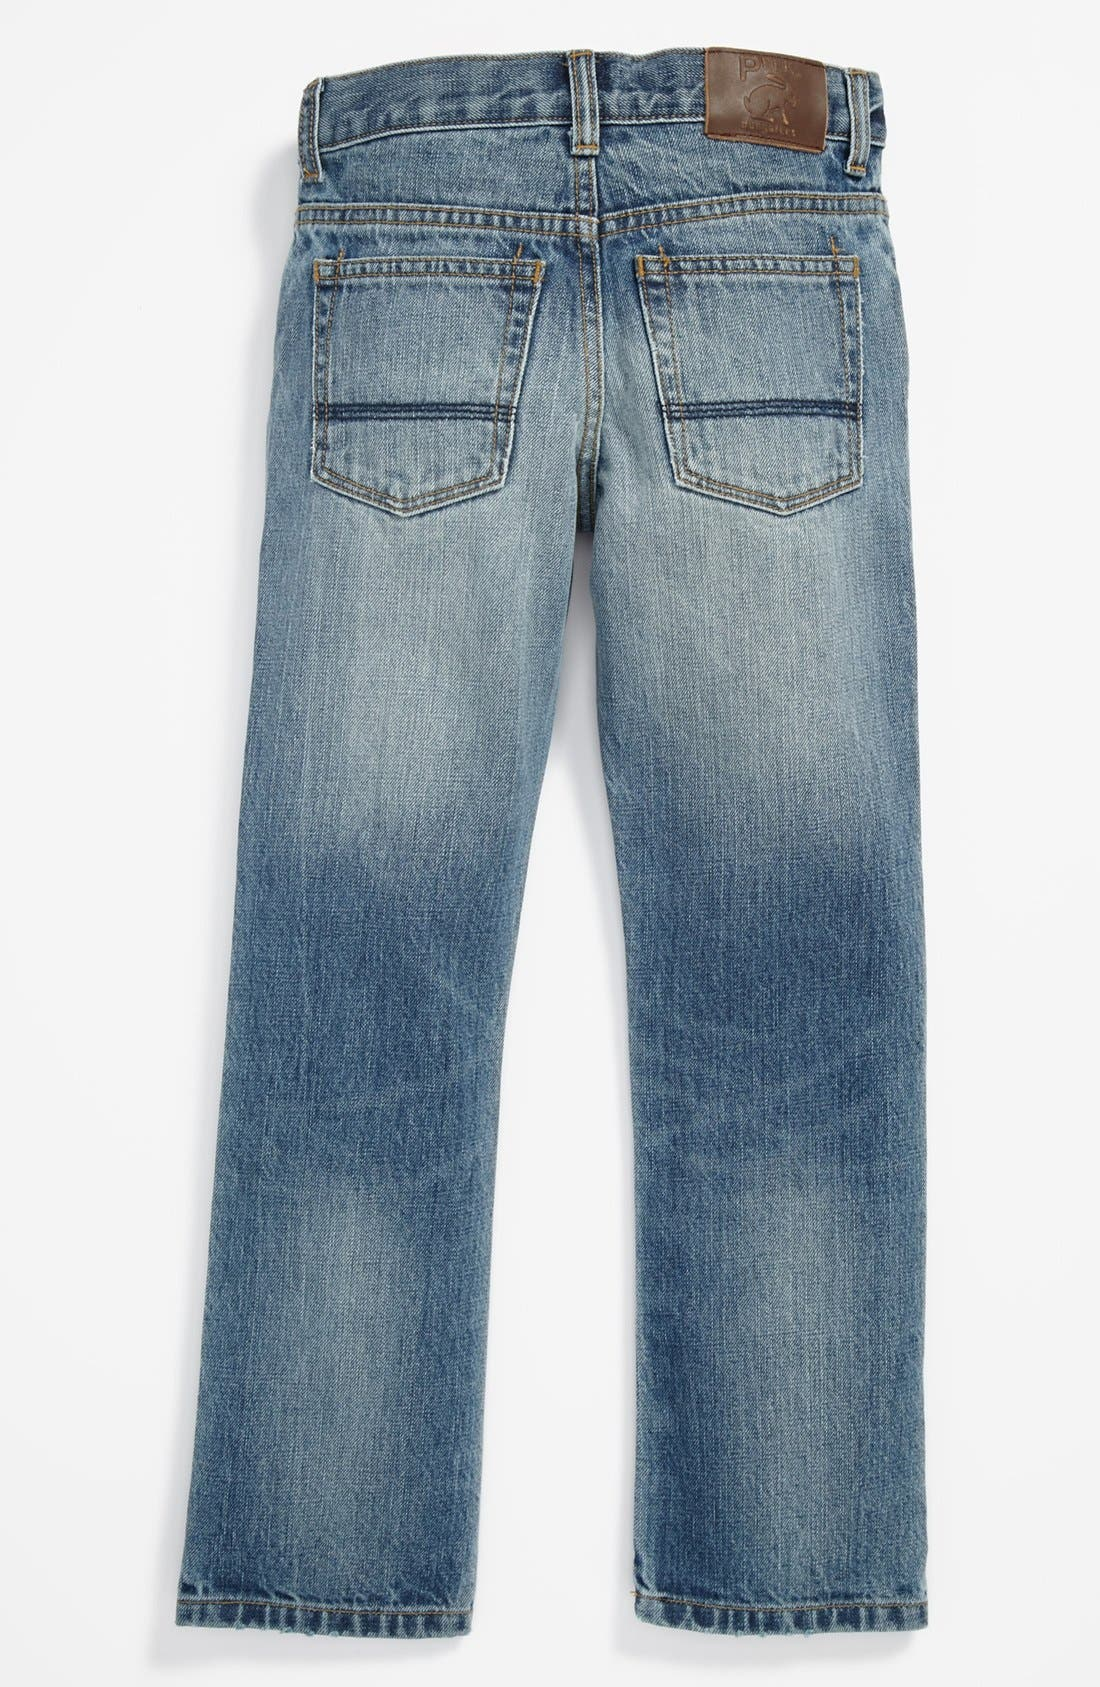 Alternate Image 1 Selected - Peek 'Ellis' Straight Leg Jeans (Toddler Boys, Little Boys & Big Boys)